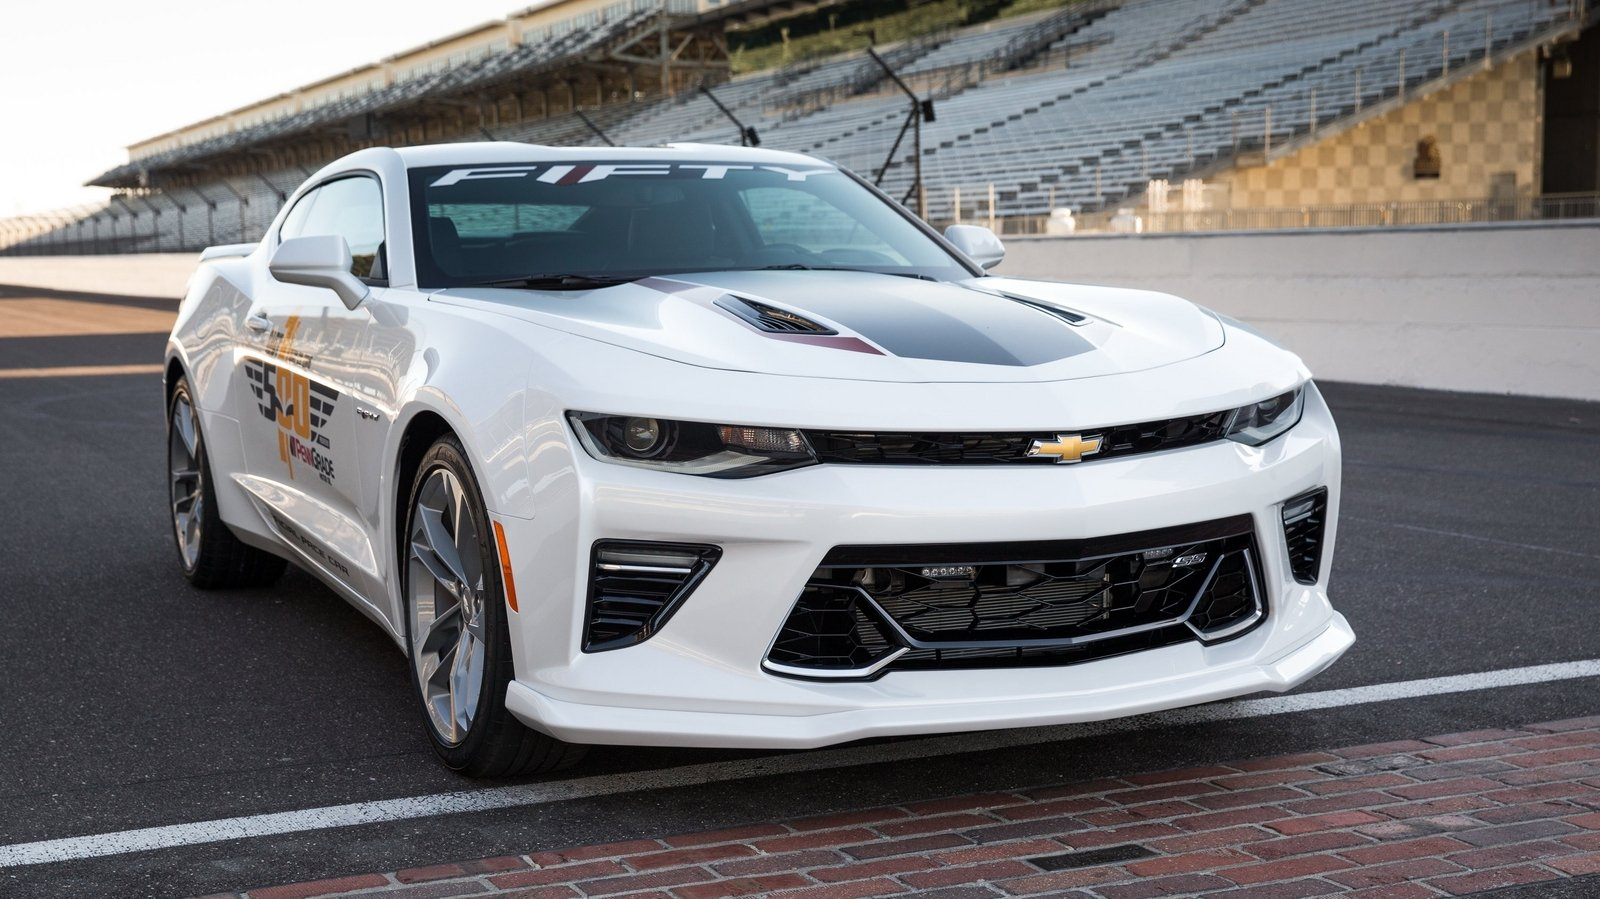 2016 chevrolet camaro ss indy 500 pace car picture 673183 car review top speed. Black Bedroom Furniture Sets. Home Design Ideas